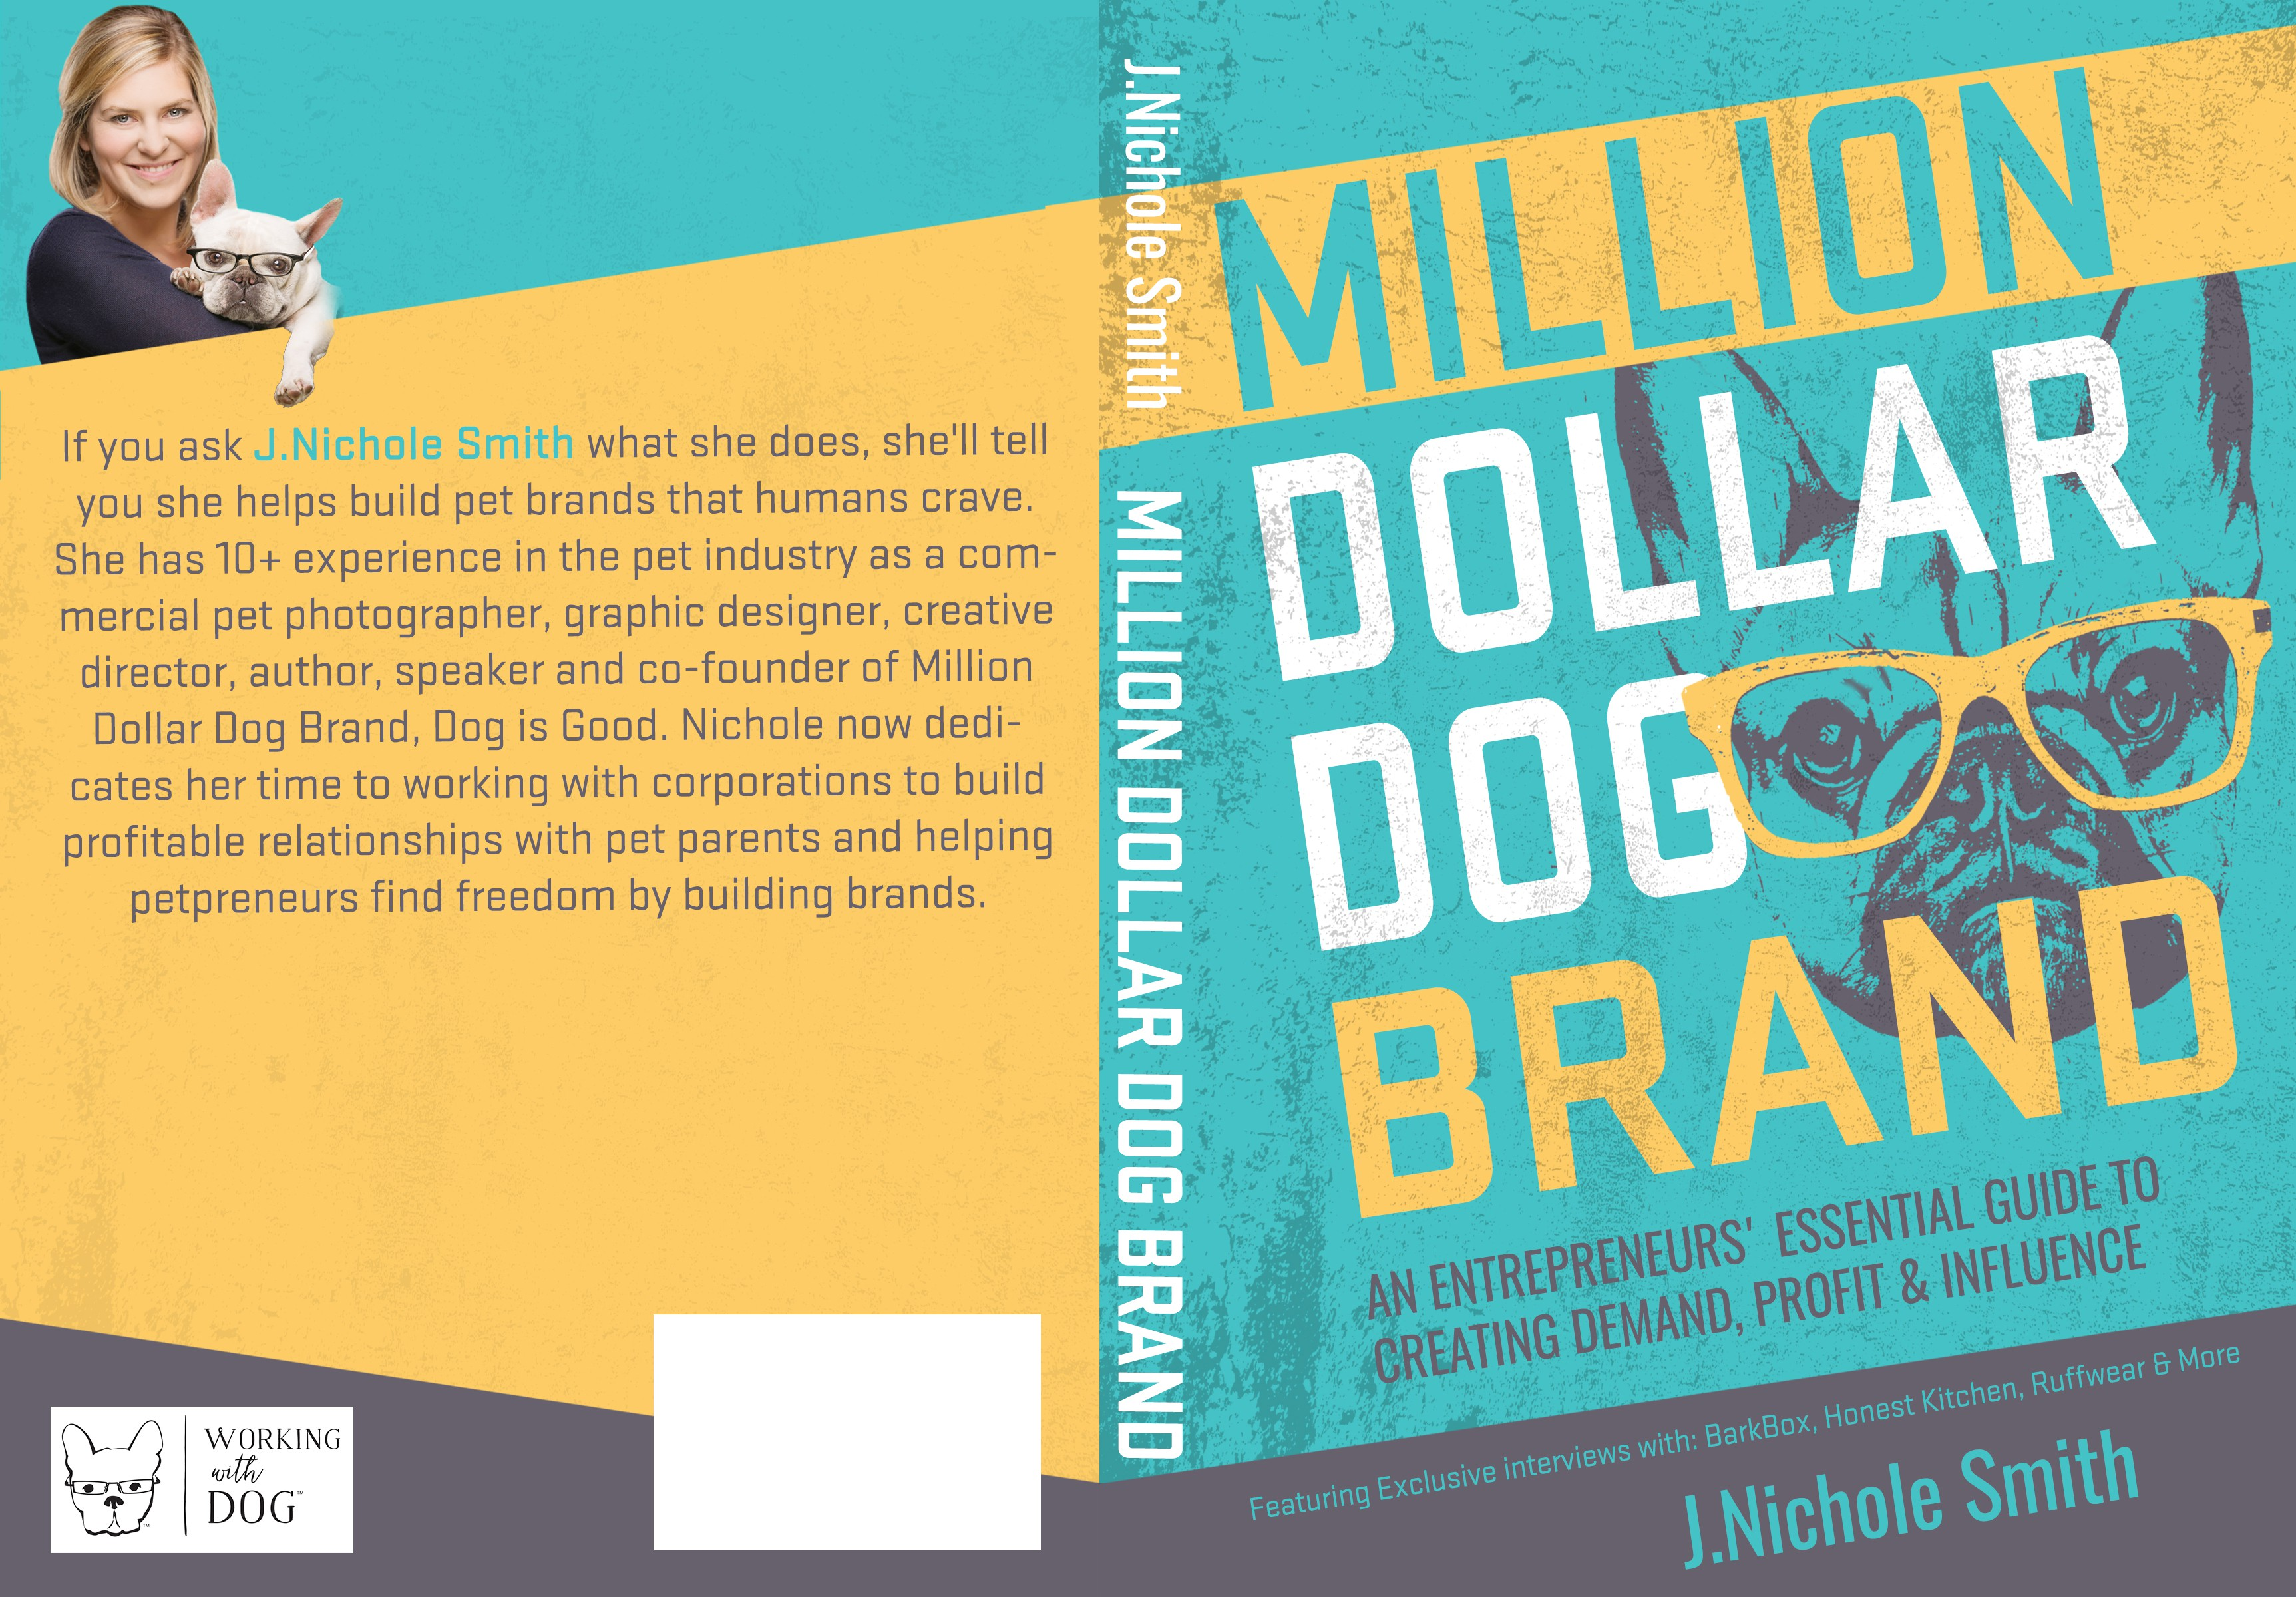 branding book needs your genius for the cover!